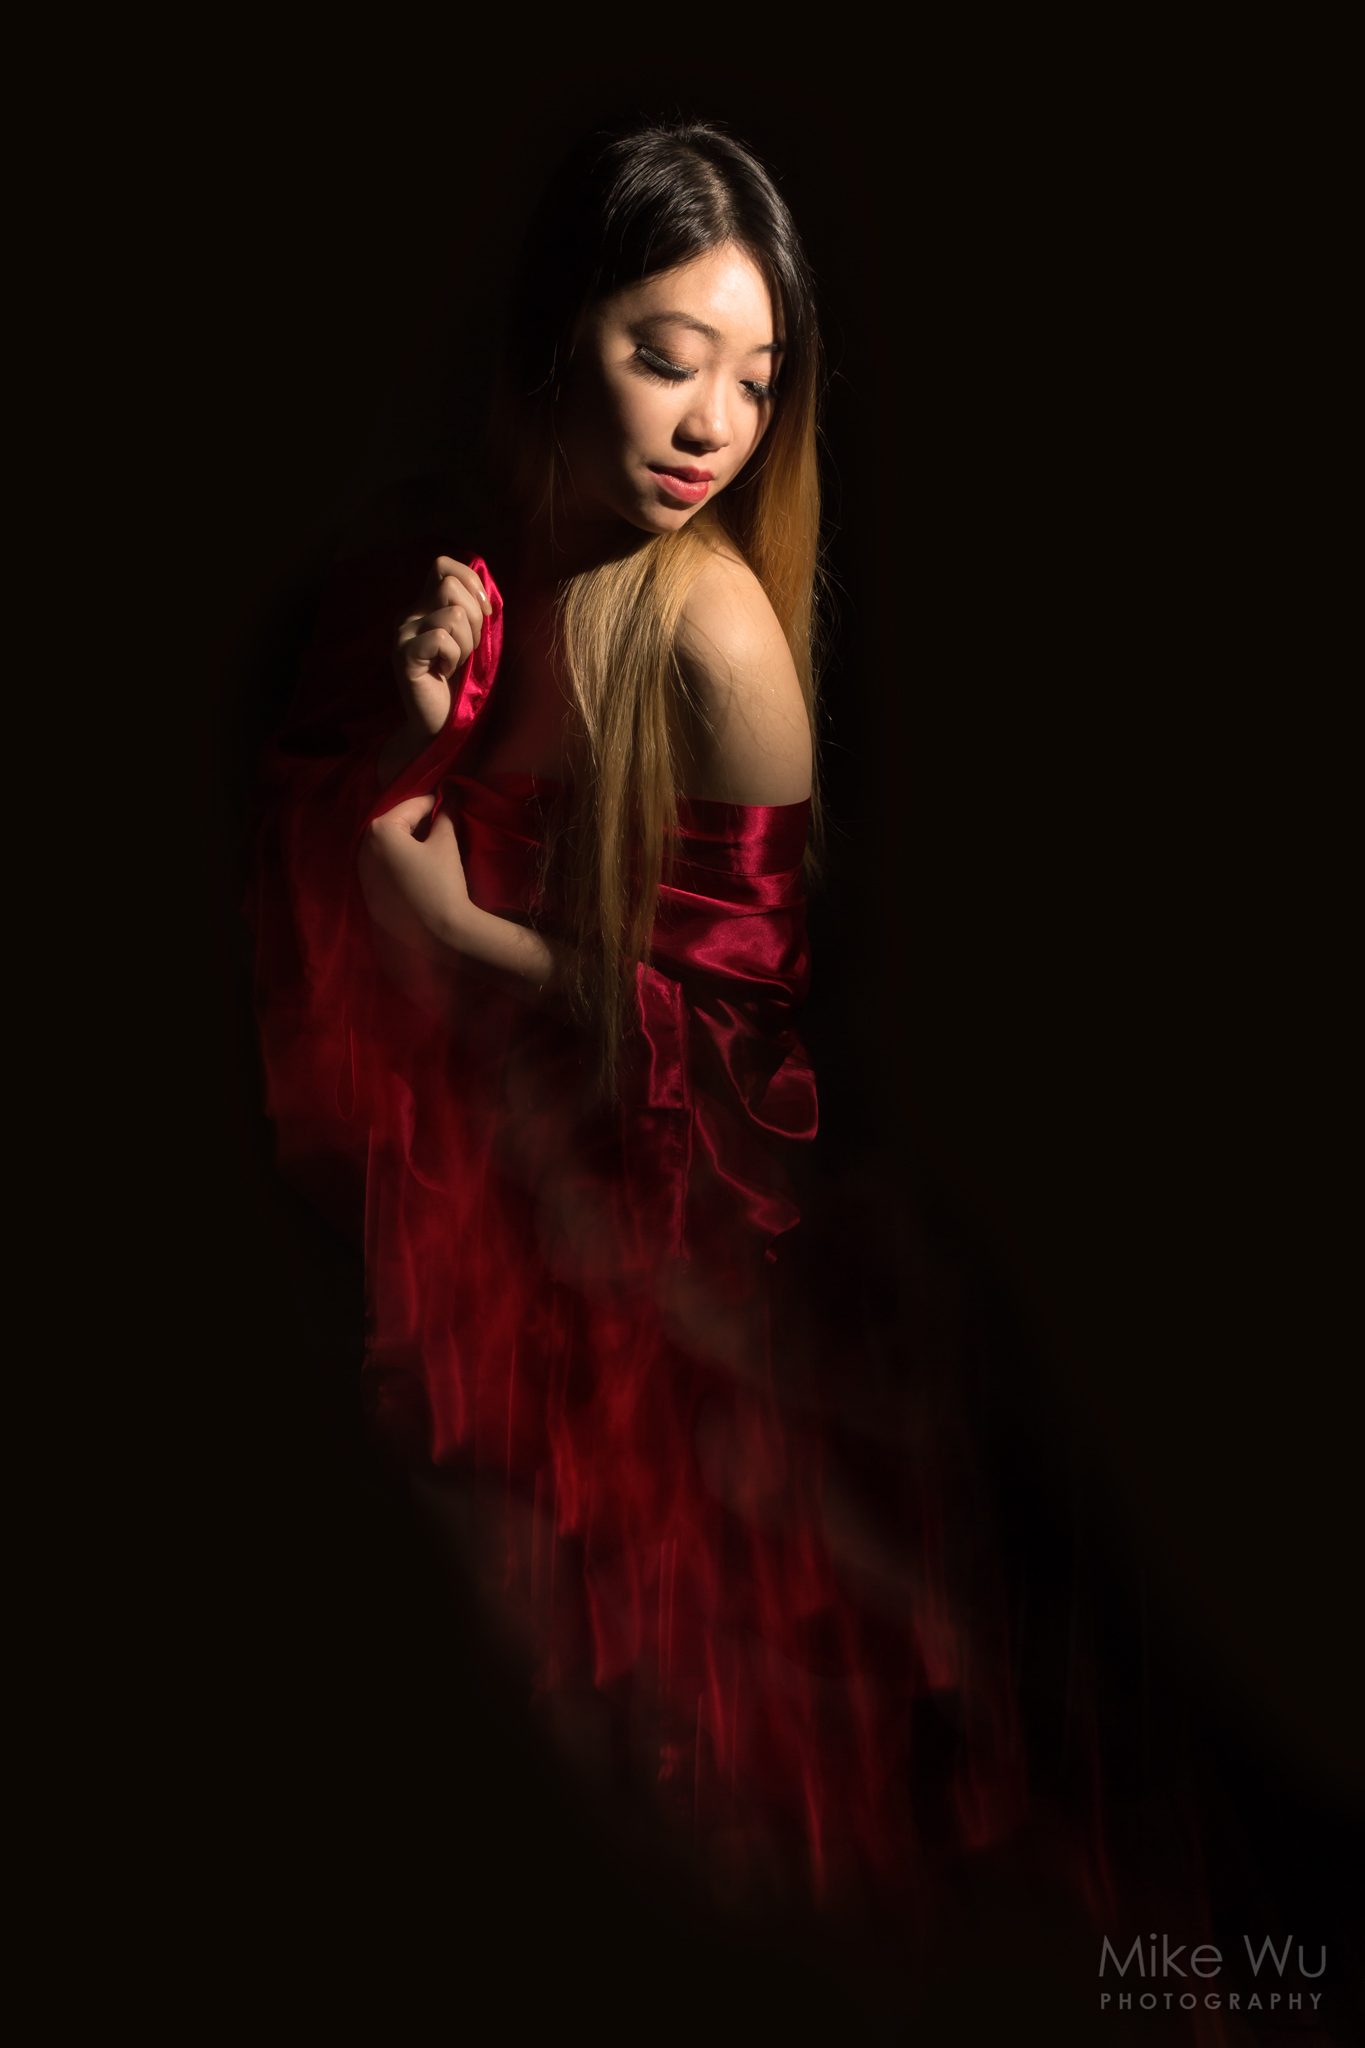 model, silk, moody, dark, lowkey, fine art, red robe, dark, studio, vancouver, photographer, photography